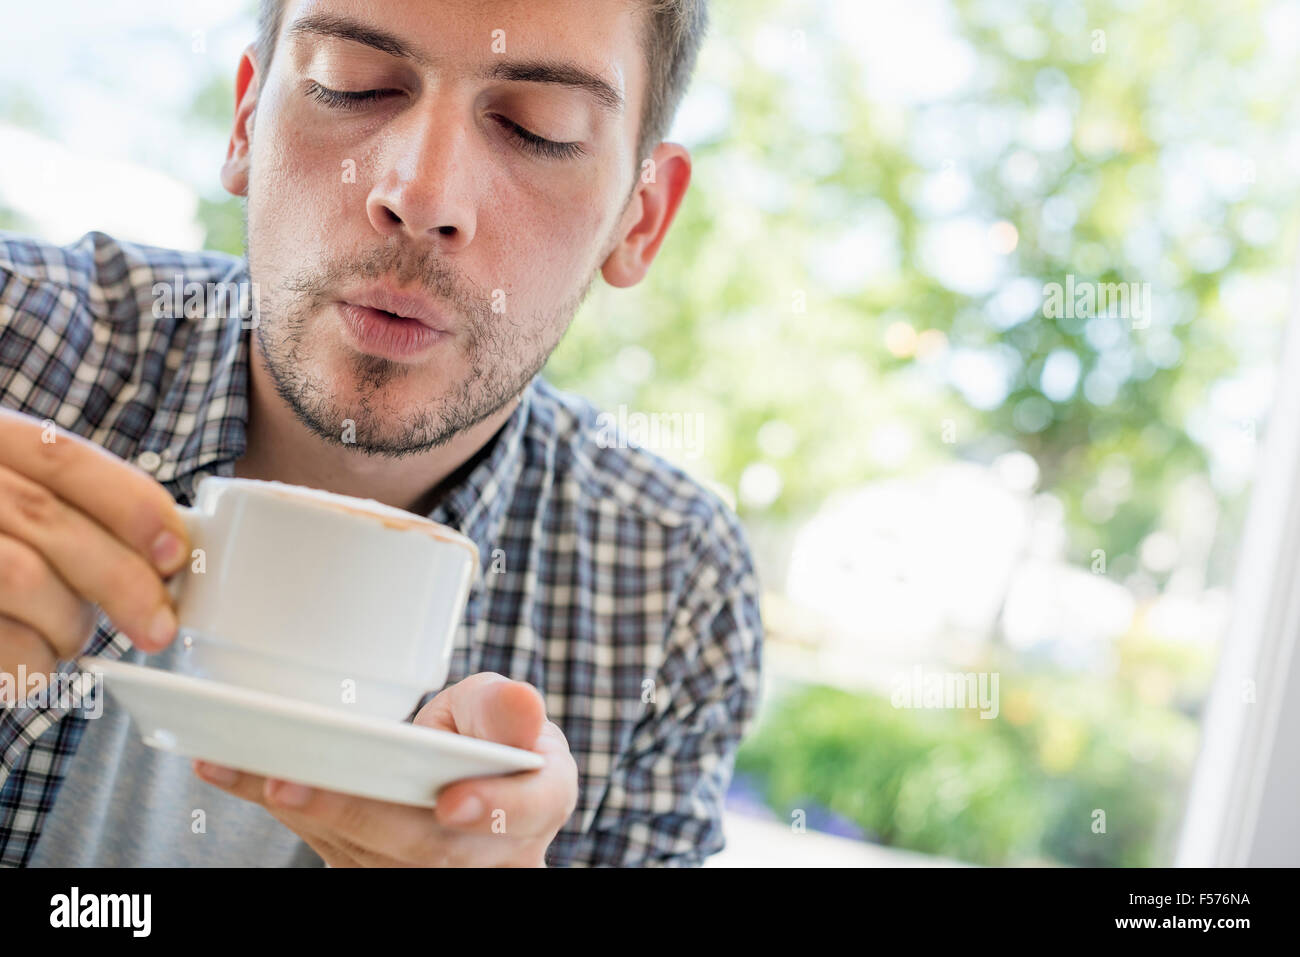 A man blowing on the surface of his hot coffee. - Stock Image